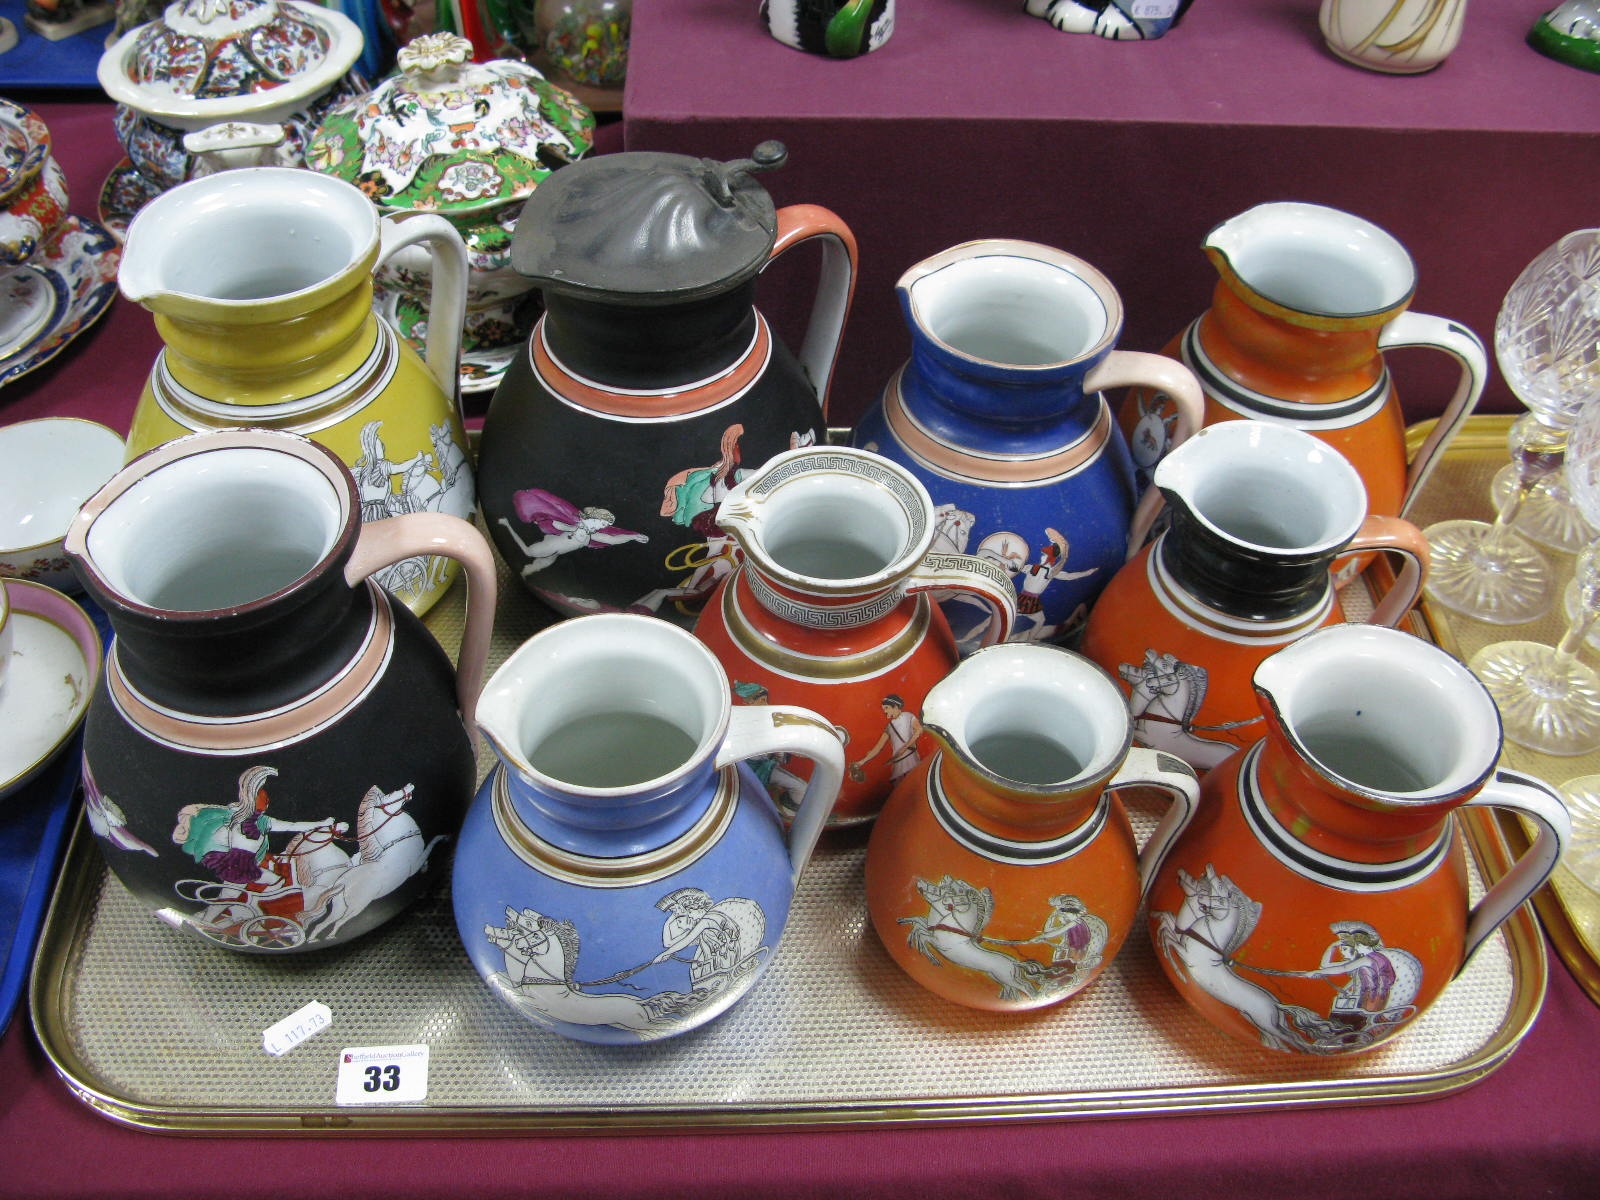 Lot 33 - A Collection of XIX Century Neoclassical Scene Jugs, in various colours.